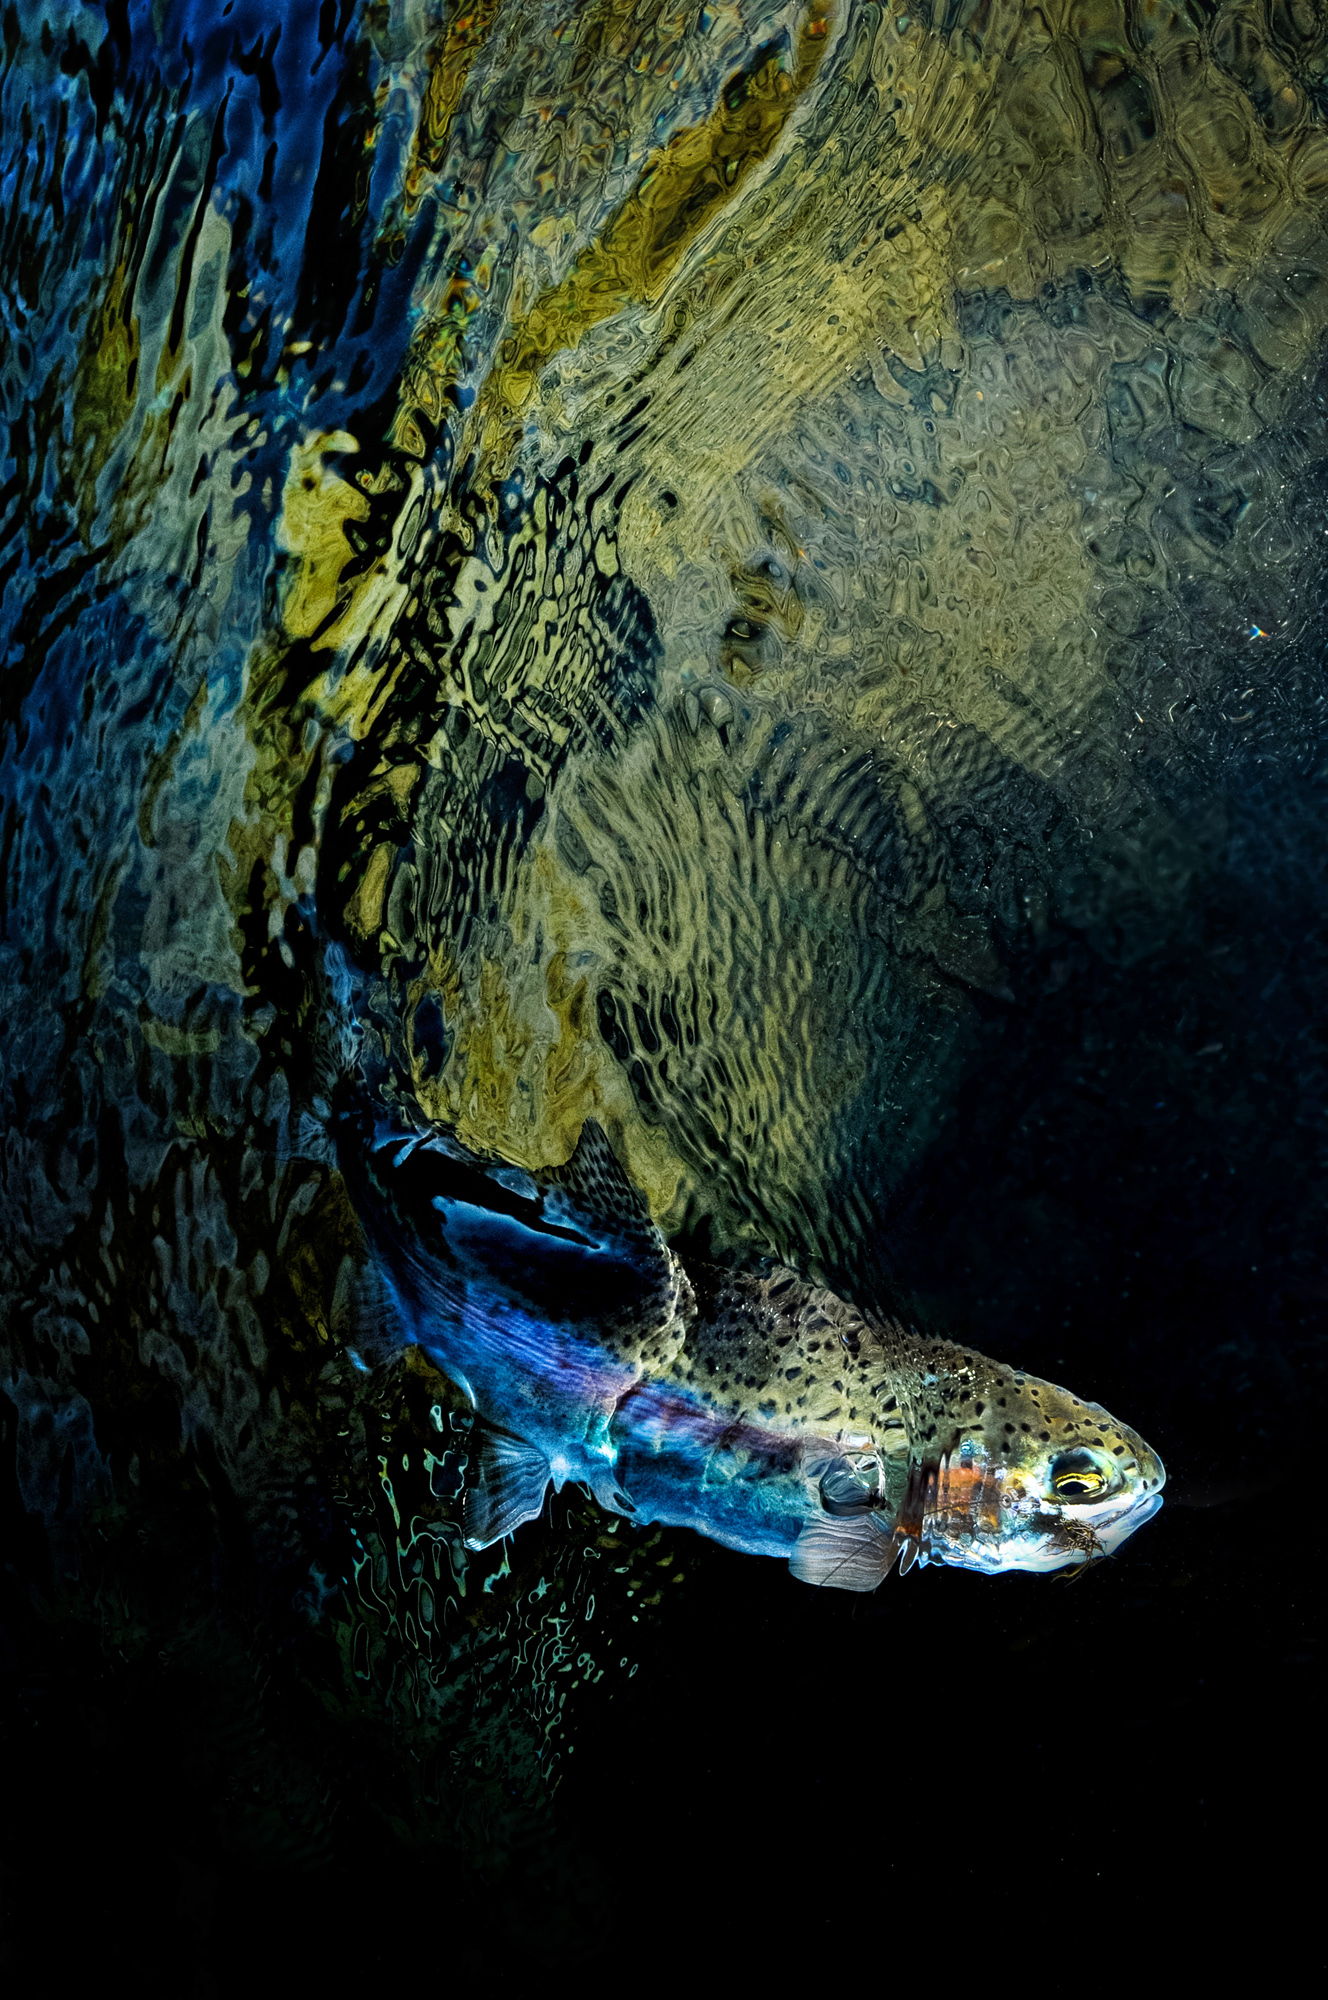 (RUNNER UP) The favorite of several judges, this ethereal capture -- full of contrast and depth -- of a wild 'redside' rainbow trout from Oregon's Mackenzie  River is one of those images you can't look away from.